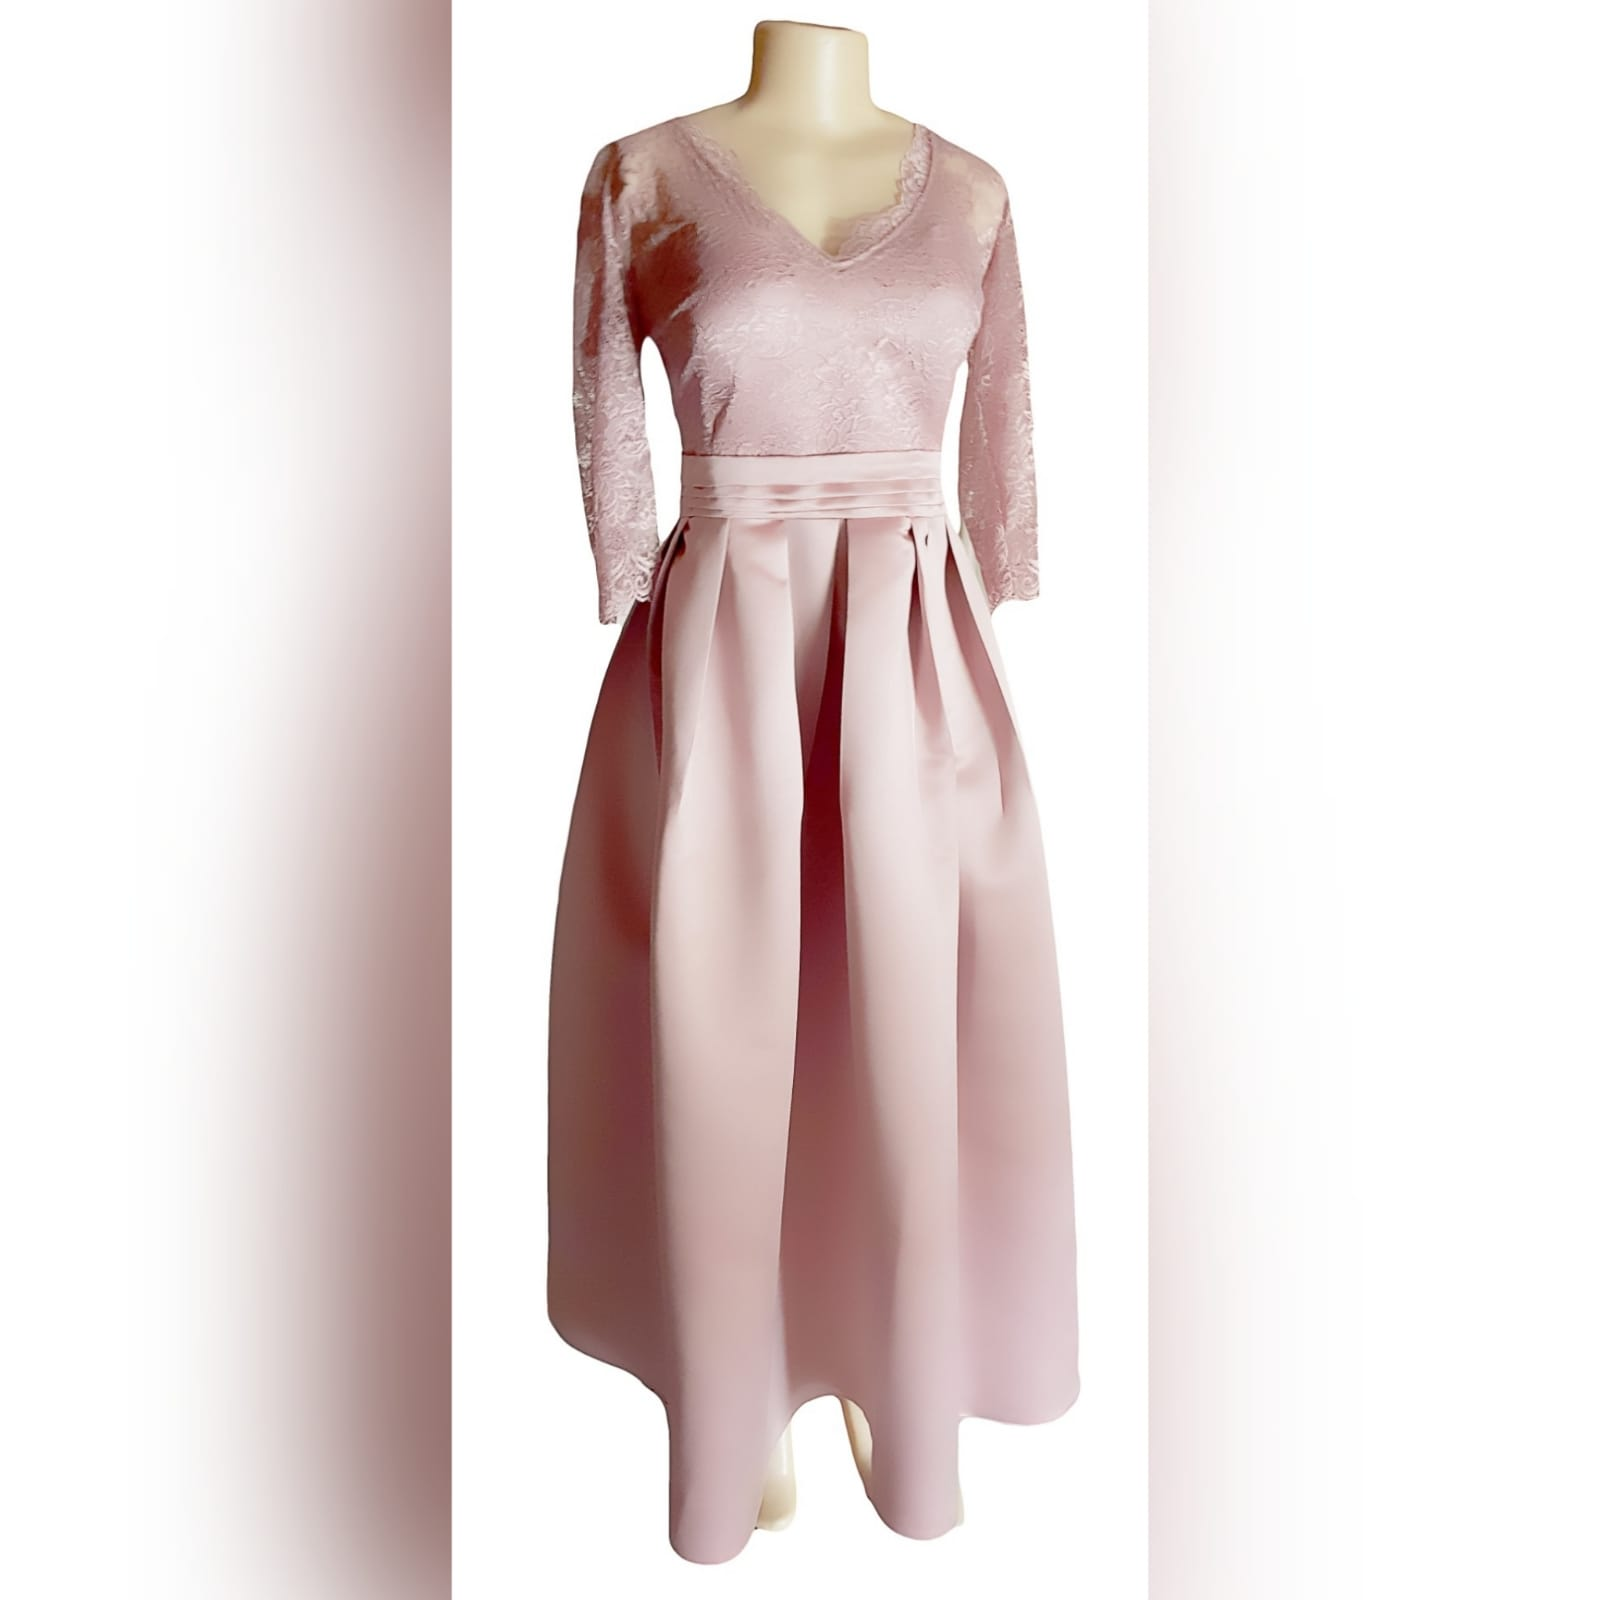 Formal evening dress in dusty pink 3 this dress was created for a wedding ceremony. A formal evening dress in dusty pink. With a lace bodice and 3/4 lace sleeves. With a v neckline. Bottom in a satin, pleated, with a pleated belt and pockets.